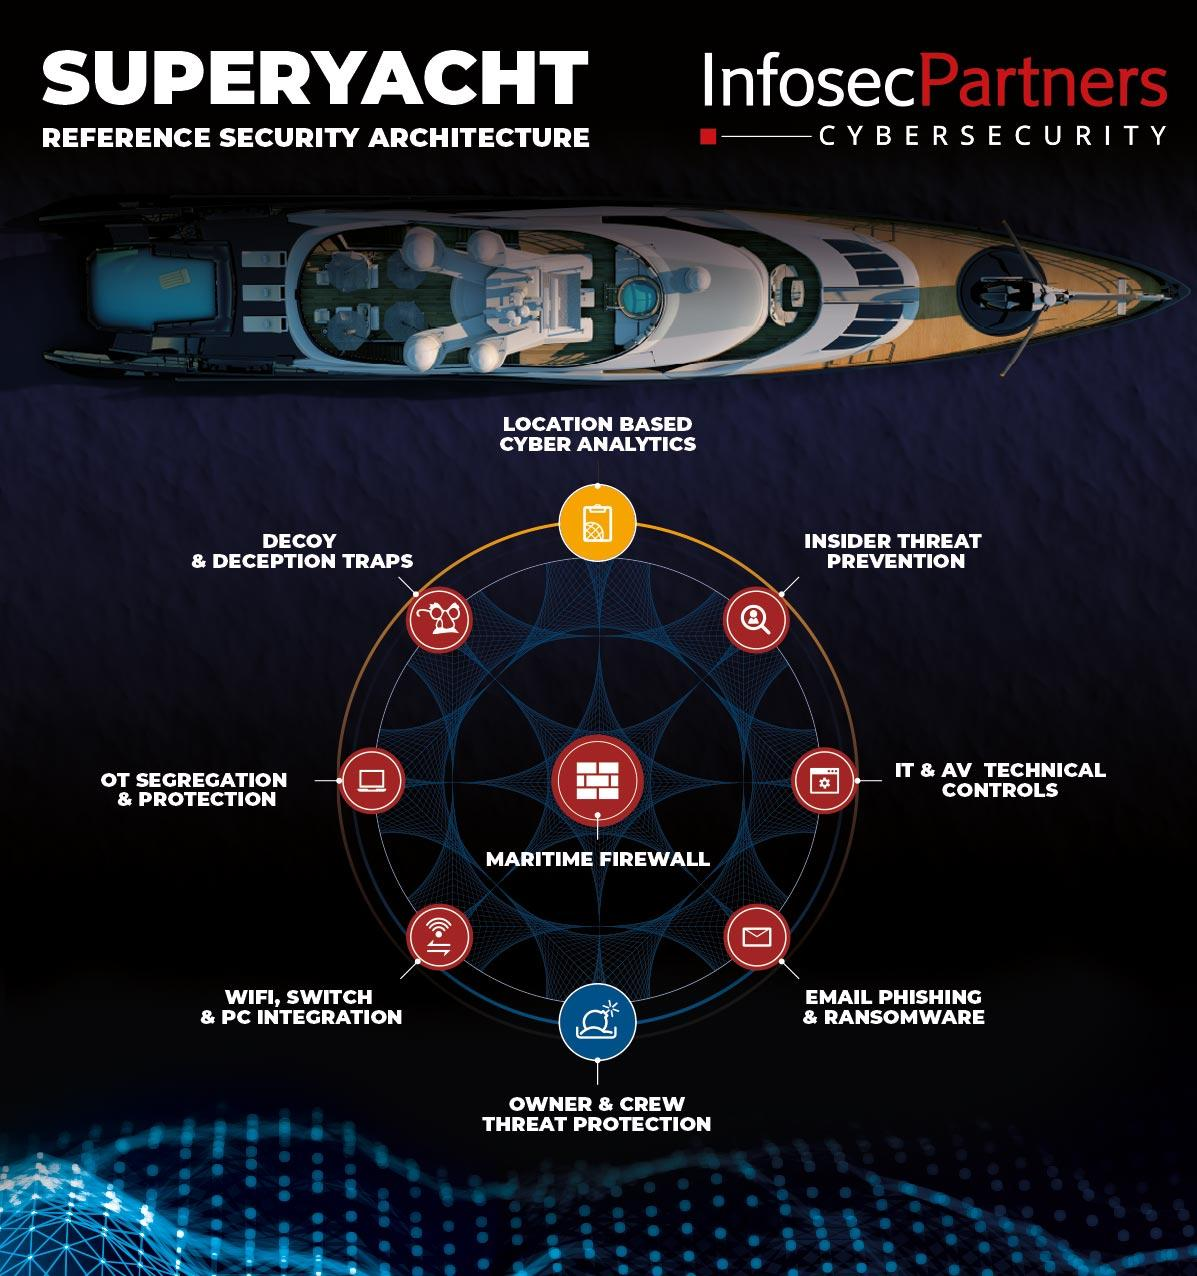 Superyacht Reference Security Architecture - IT OT Systems